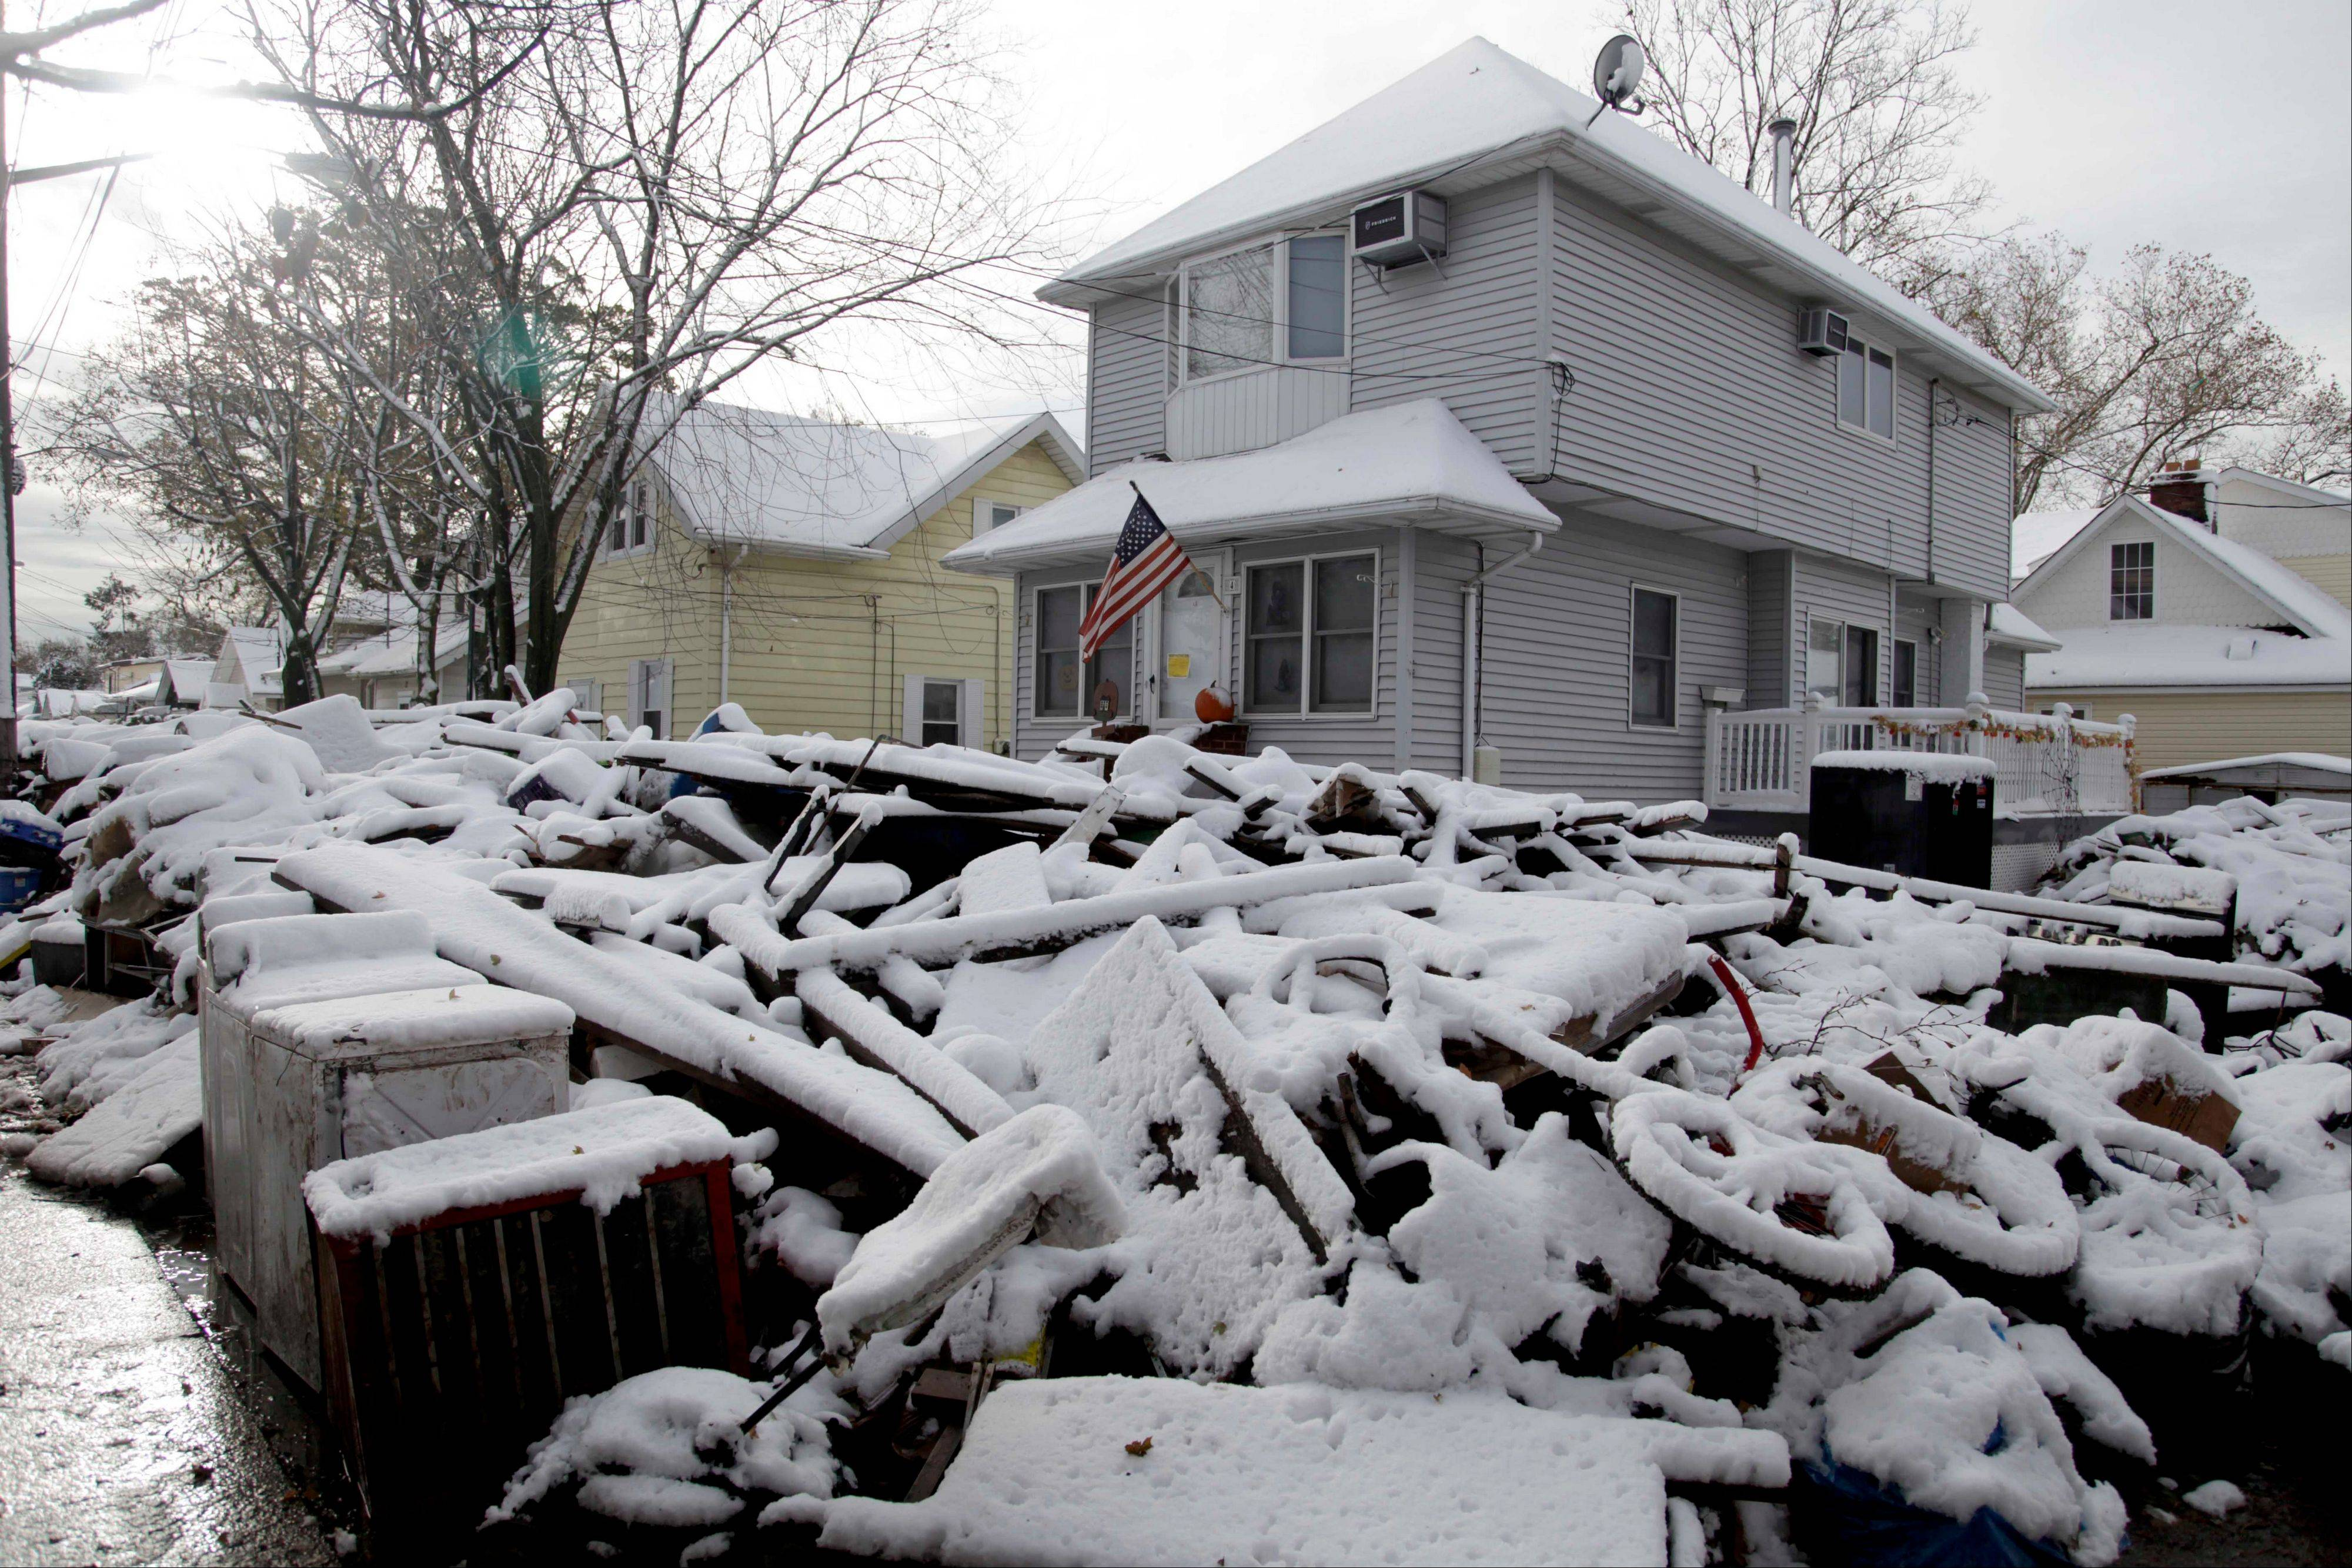 A pile of garbage in the street is covered with snow in the New Dorp section of Staten Island, N.Y., Thursday, Nov. 8, 2012. The New York-New Jersey region woke up to a layer of wet snow and more power outages after a new storm pushed back efforts to recover from Superstorm Sandy.